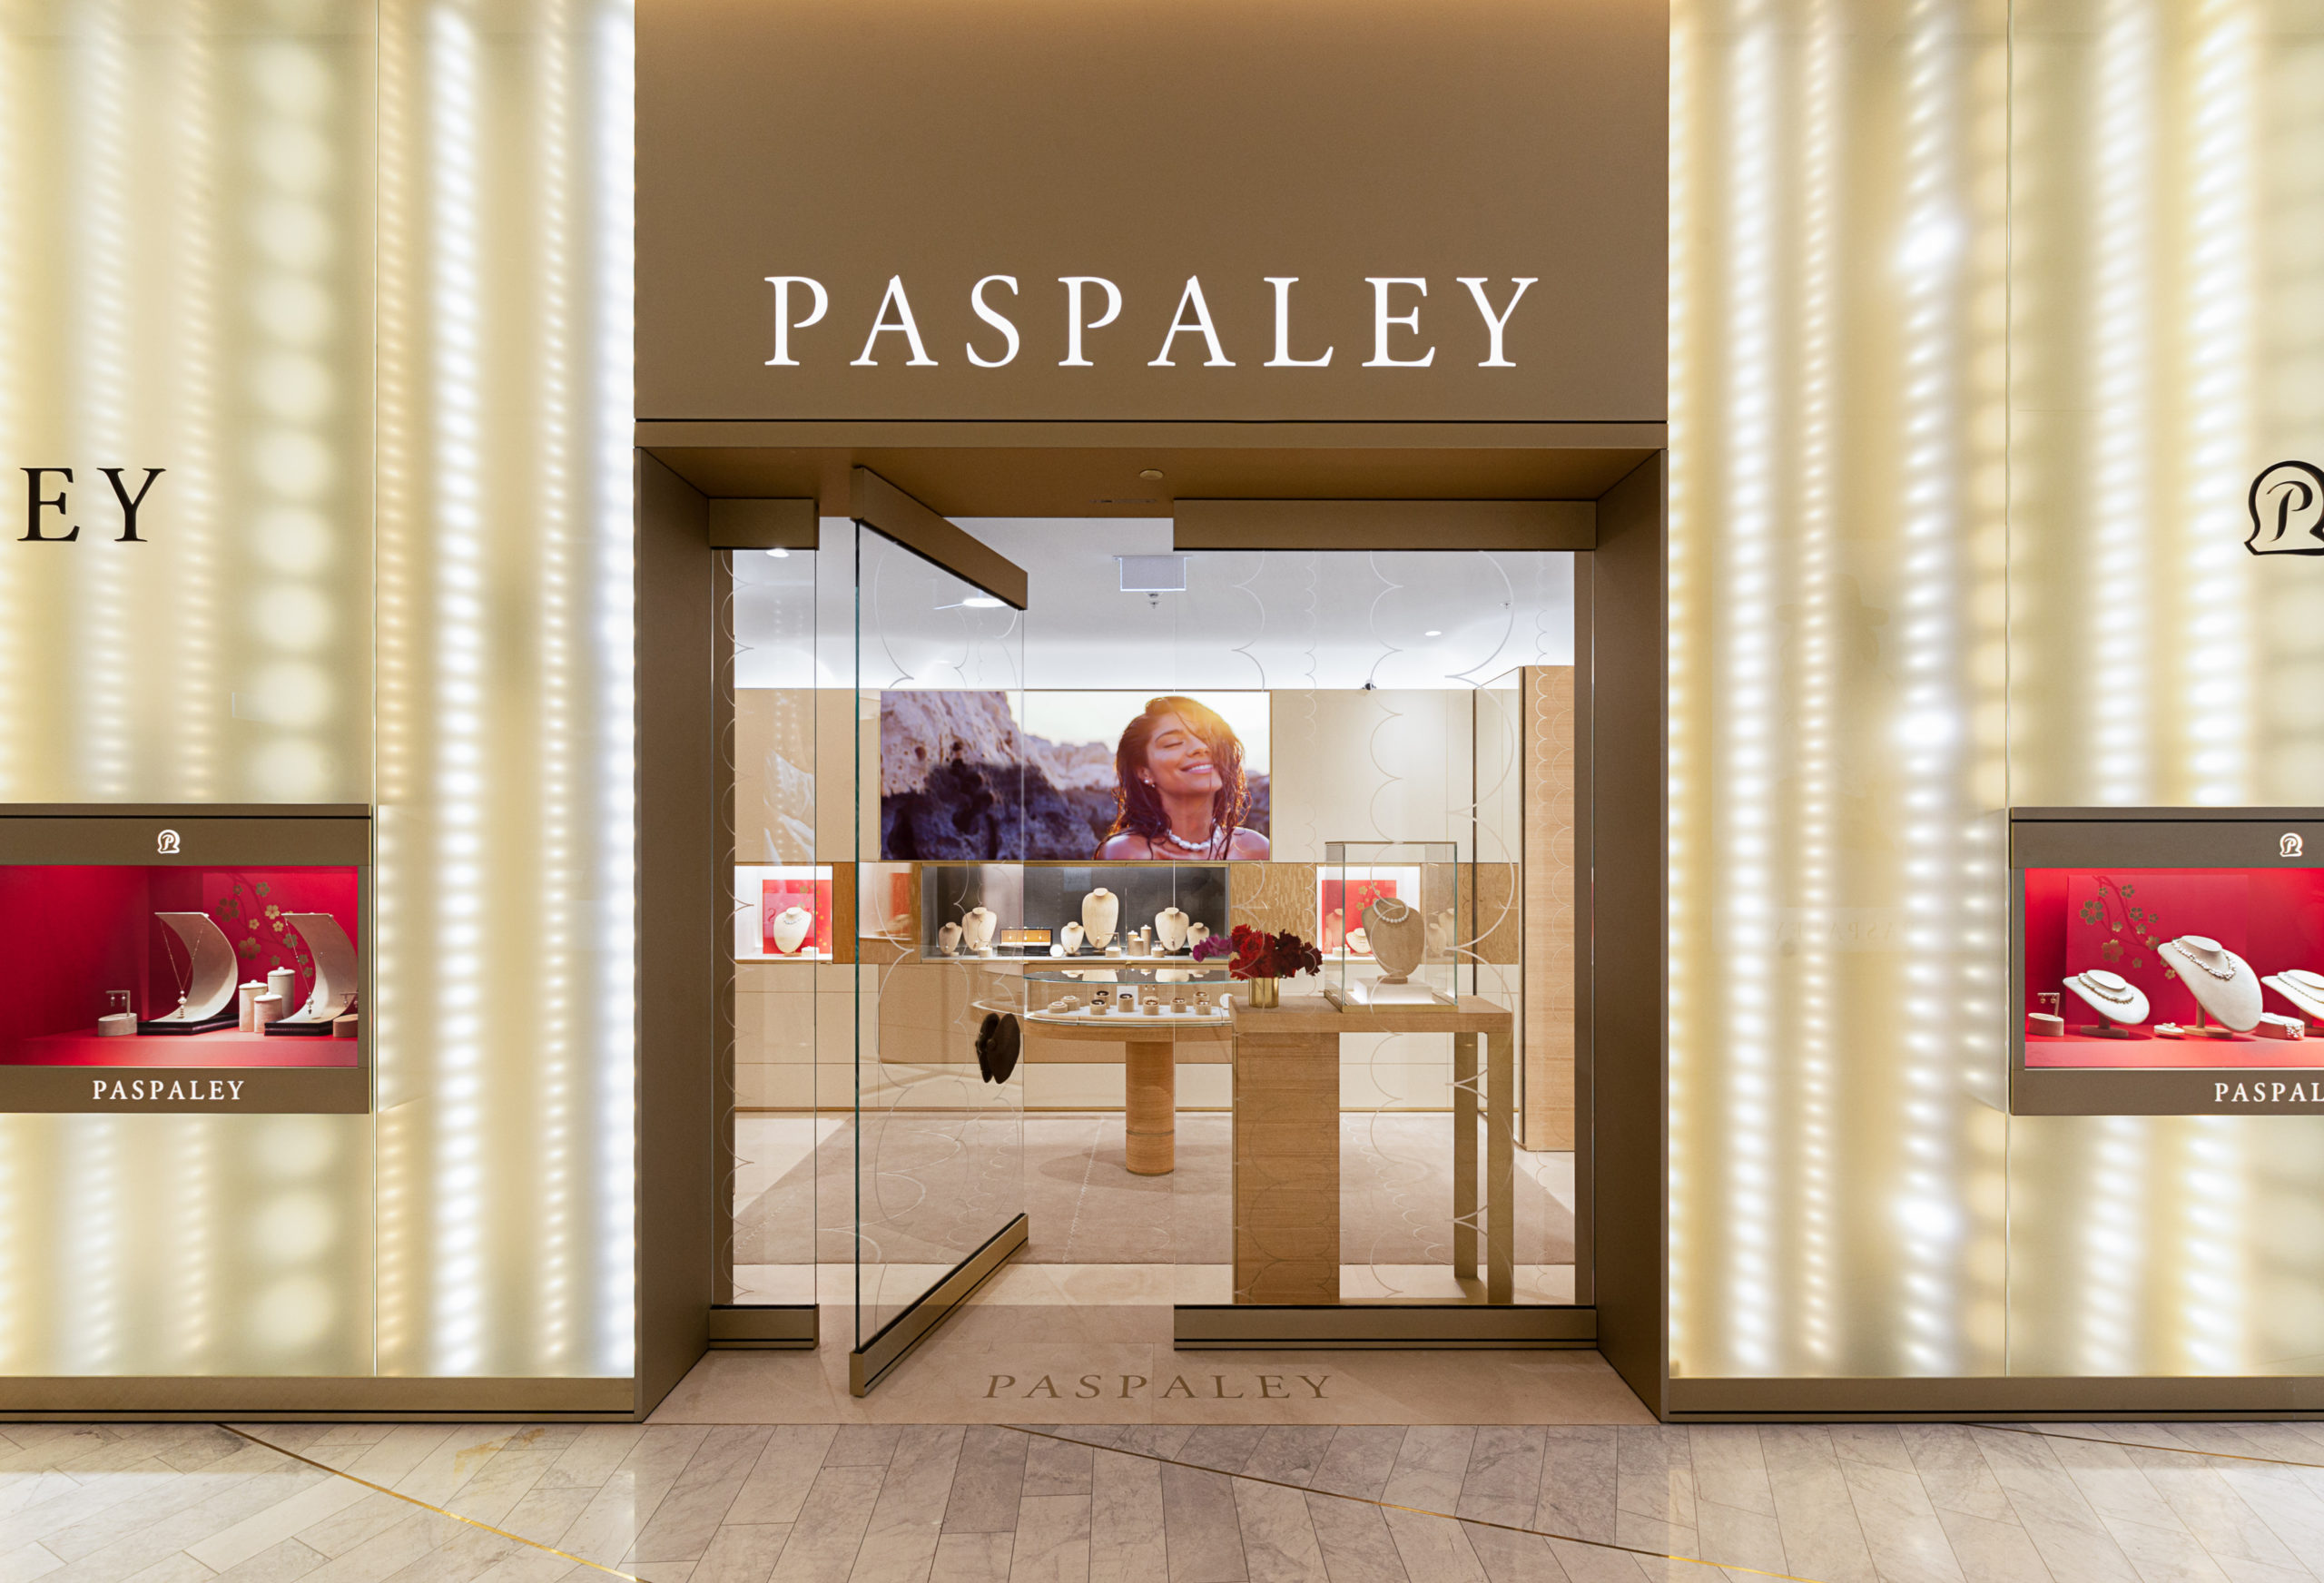 Paspaley Boutique Crown Sydney 28.01.2021 ELT 8674